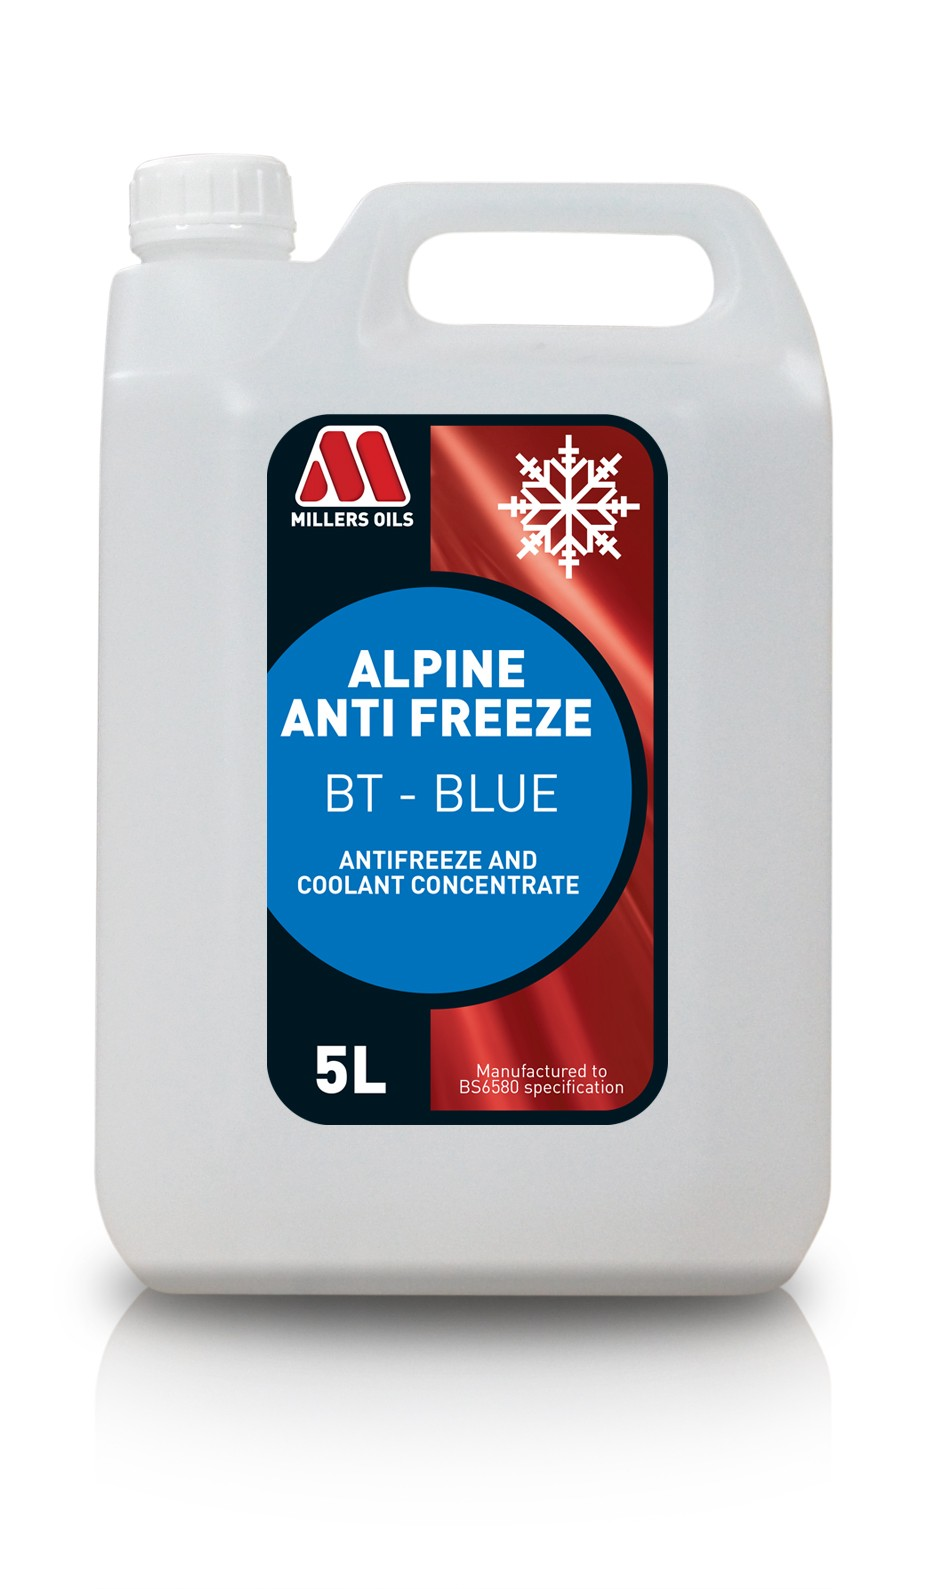 Millers Oils Alpine Antifreeze BT Blue koncentrat 1:1